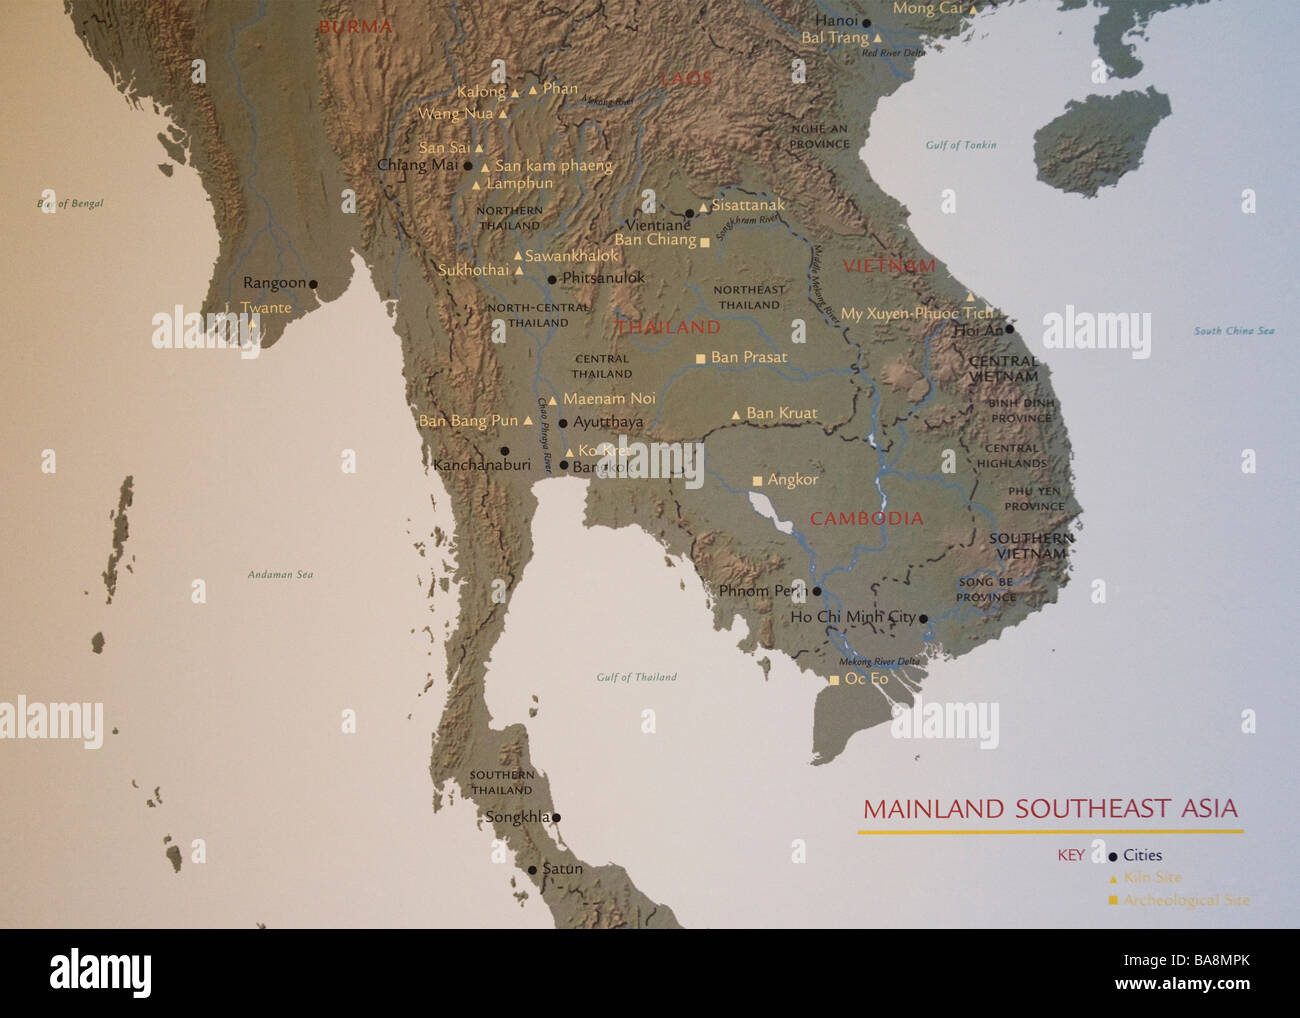 Map Of Cambodia Vietnam Thailand Laos Stock Photos Map Of Cambodia